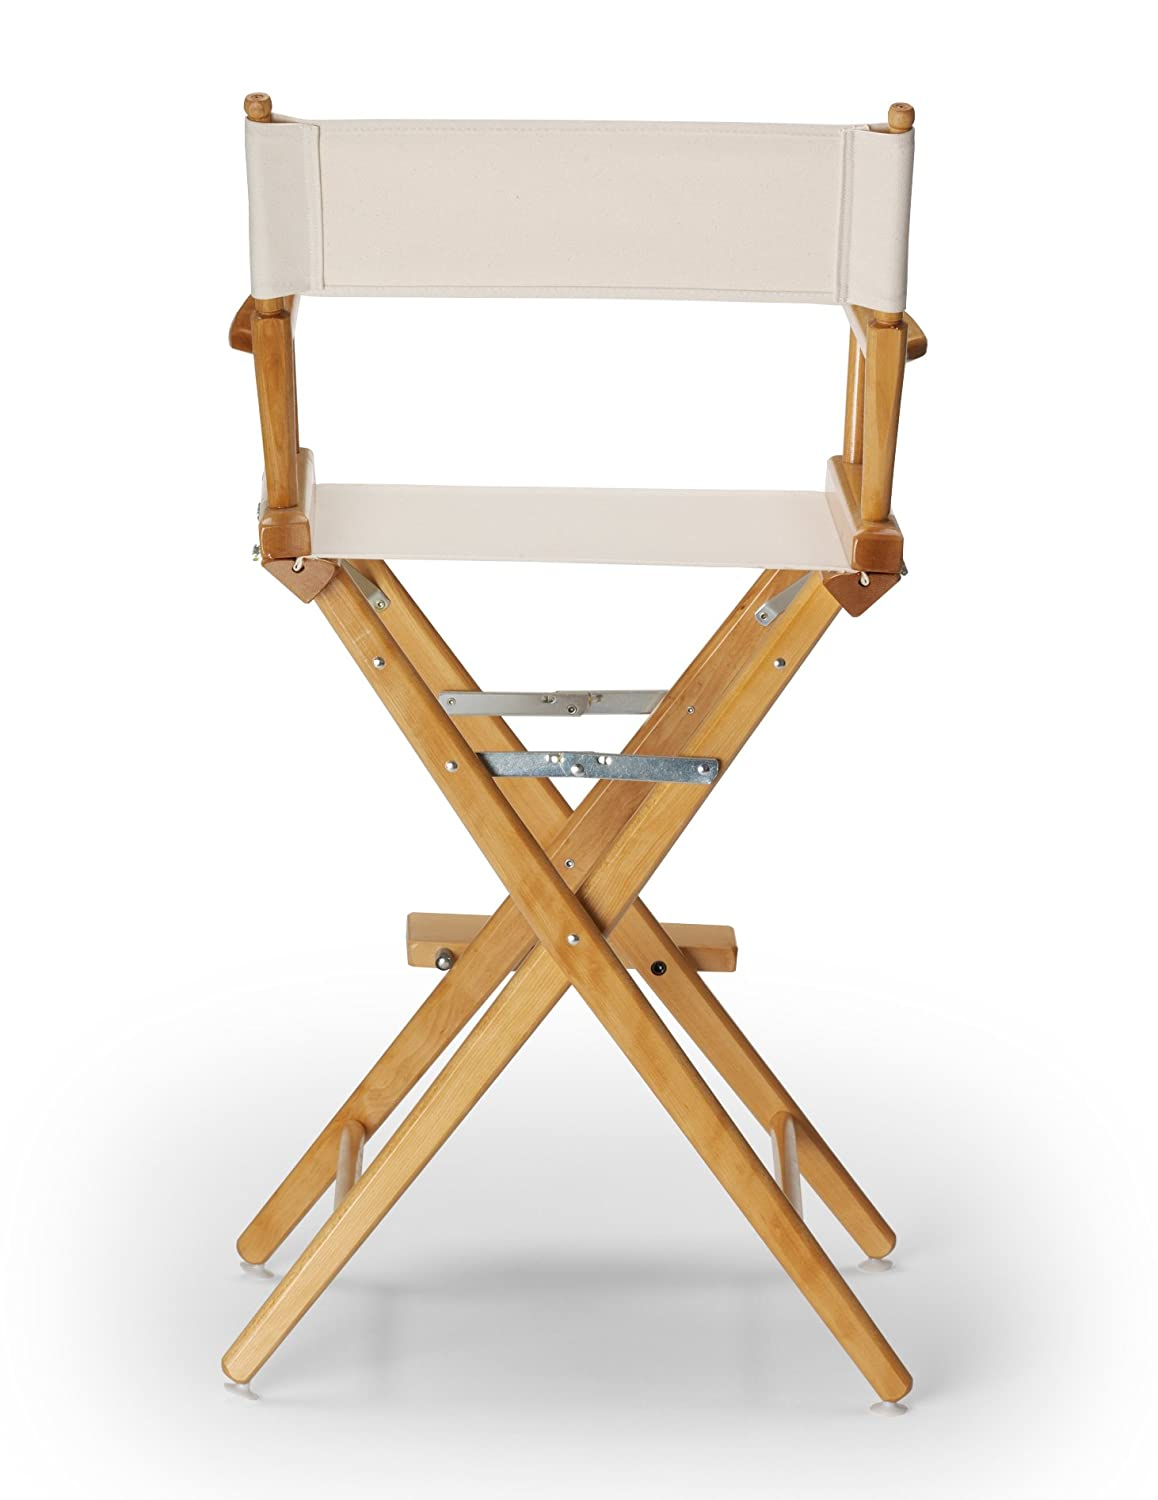 telescope casual world famous counter height directors chair. amazon.com: telescope casual world famous bar height director chair, white with frame: home improvement counter directors chair o